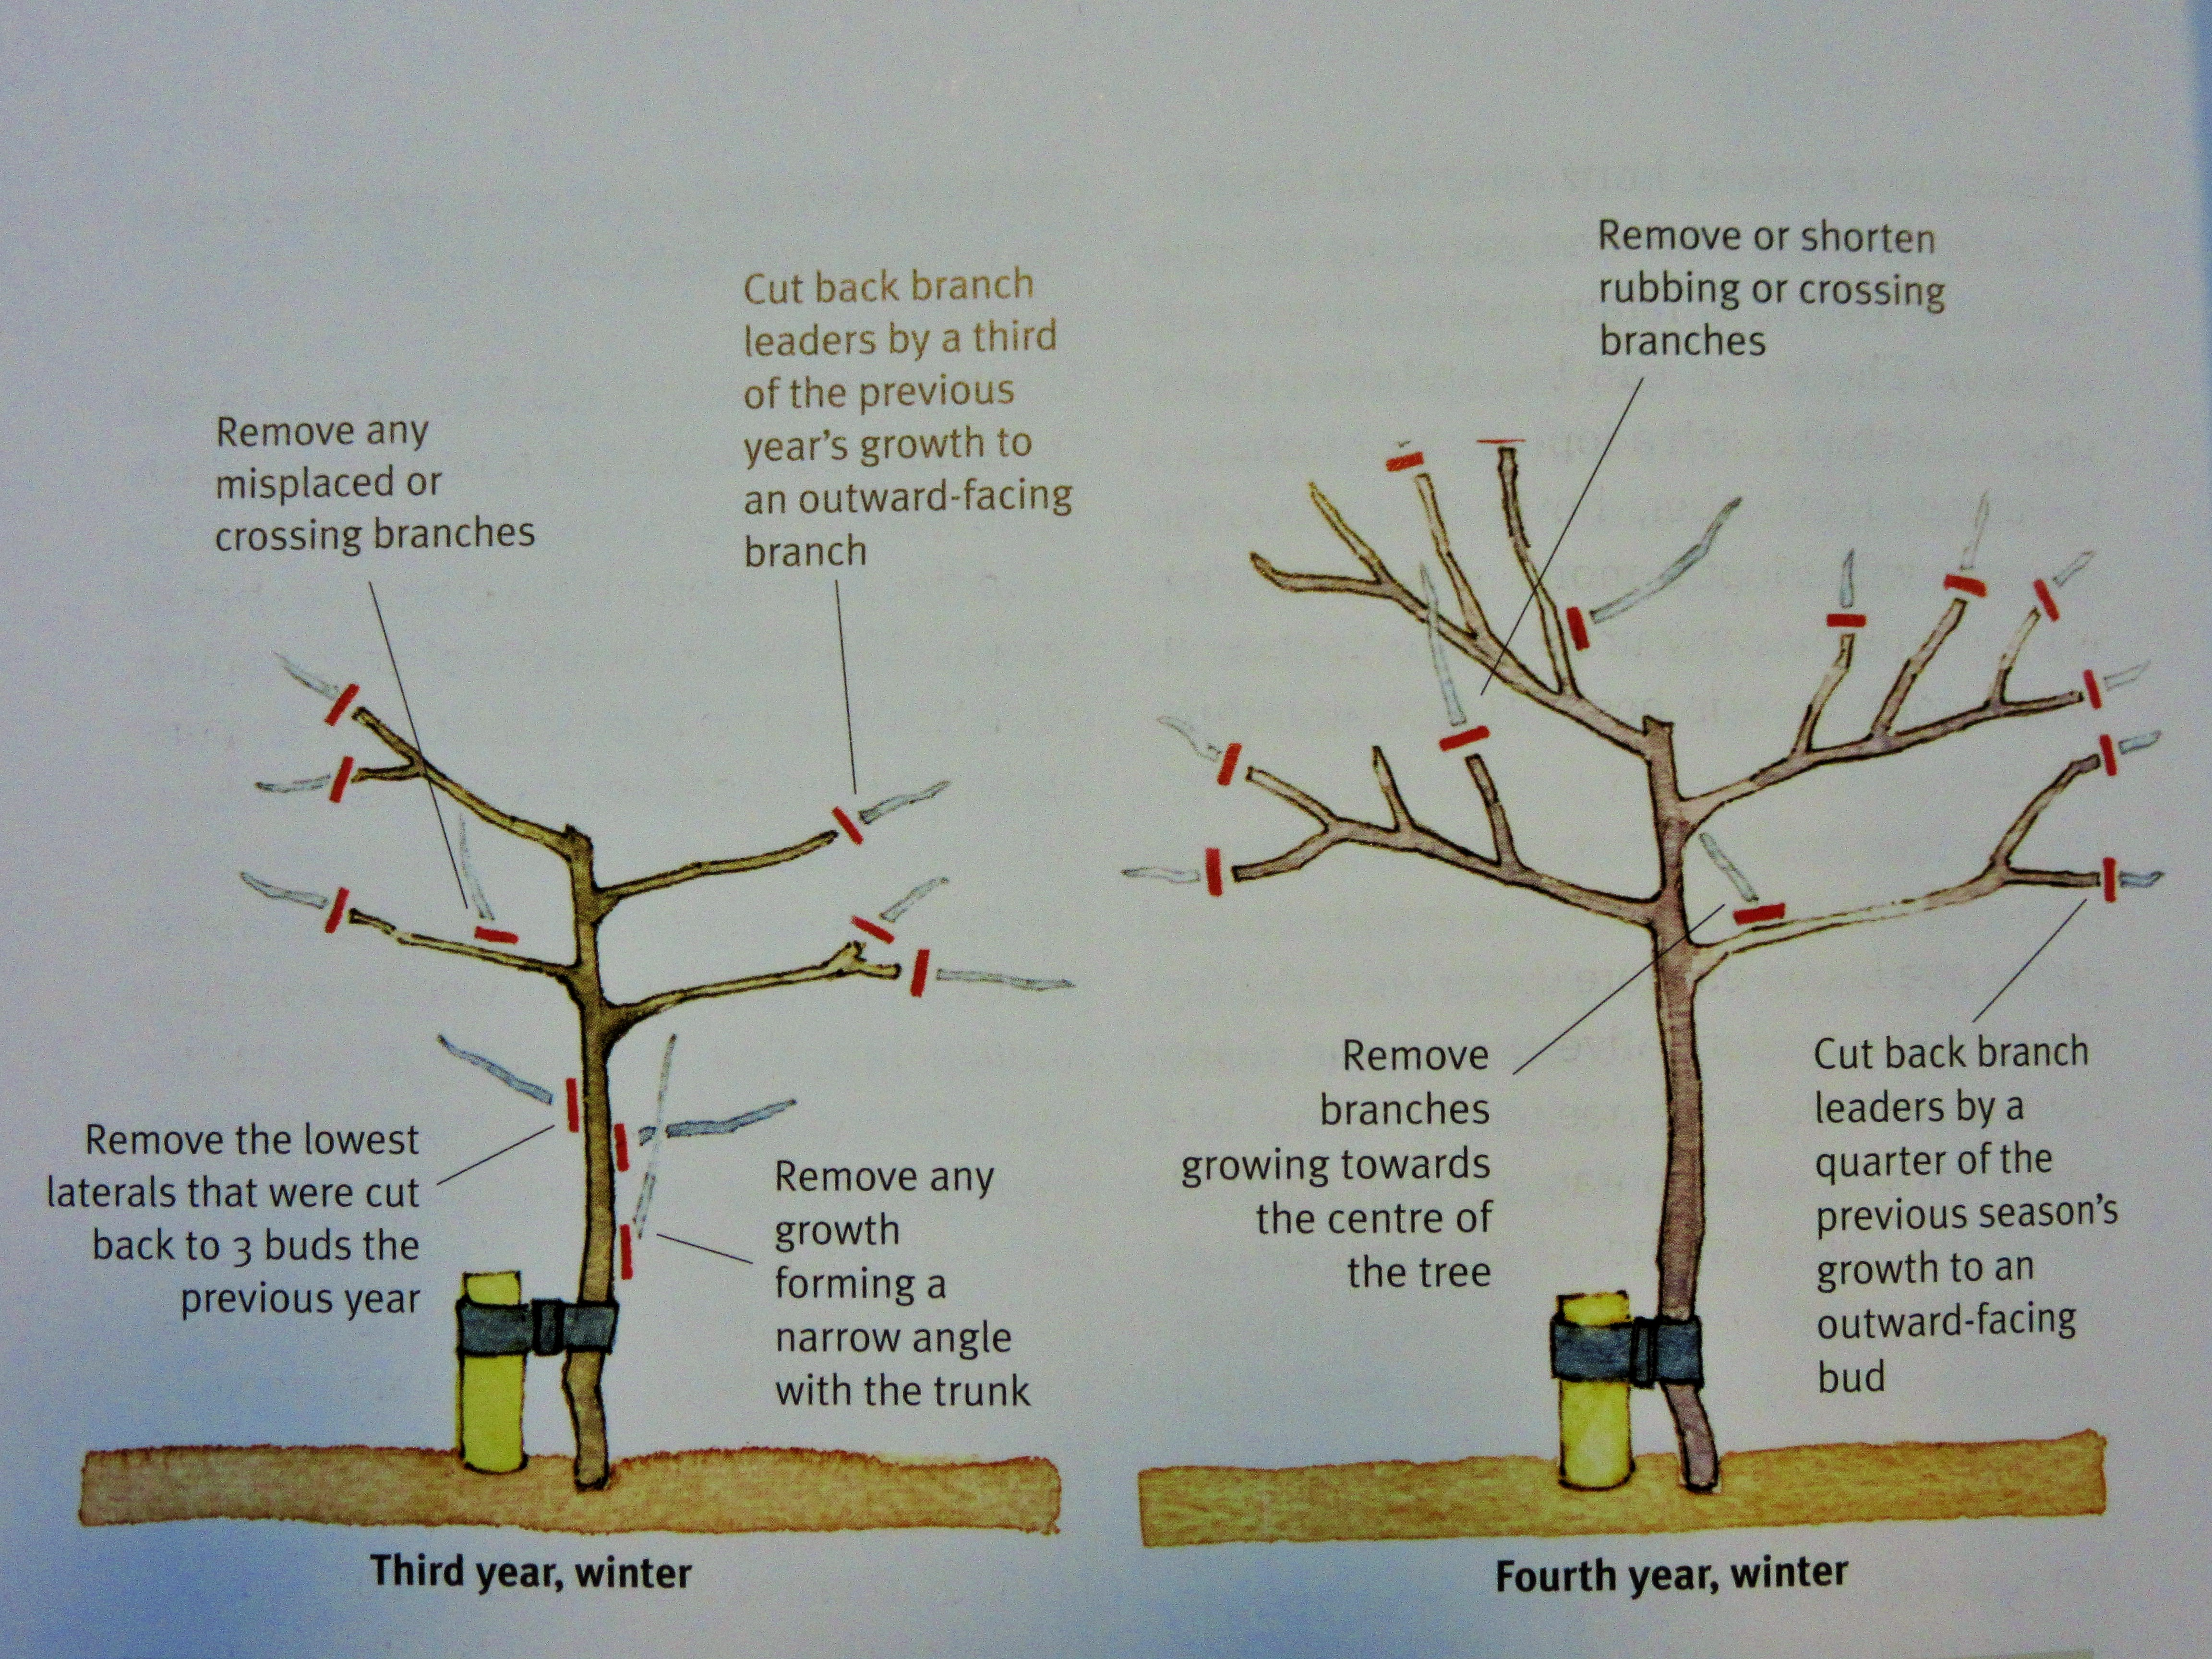 Pruning a mature apple tree